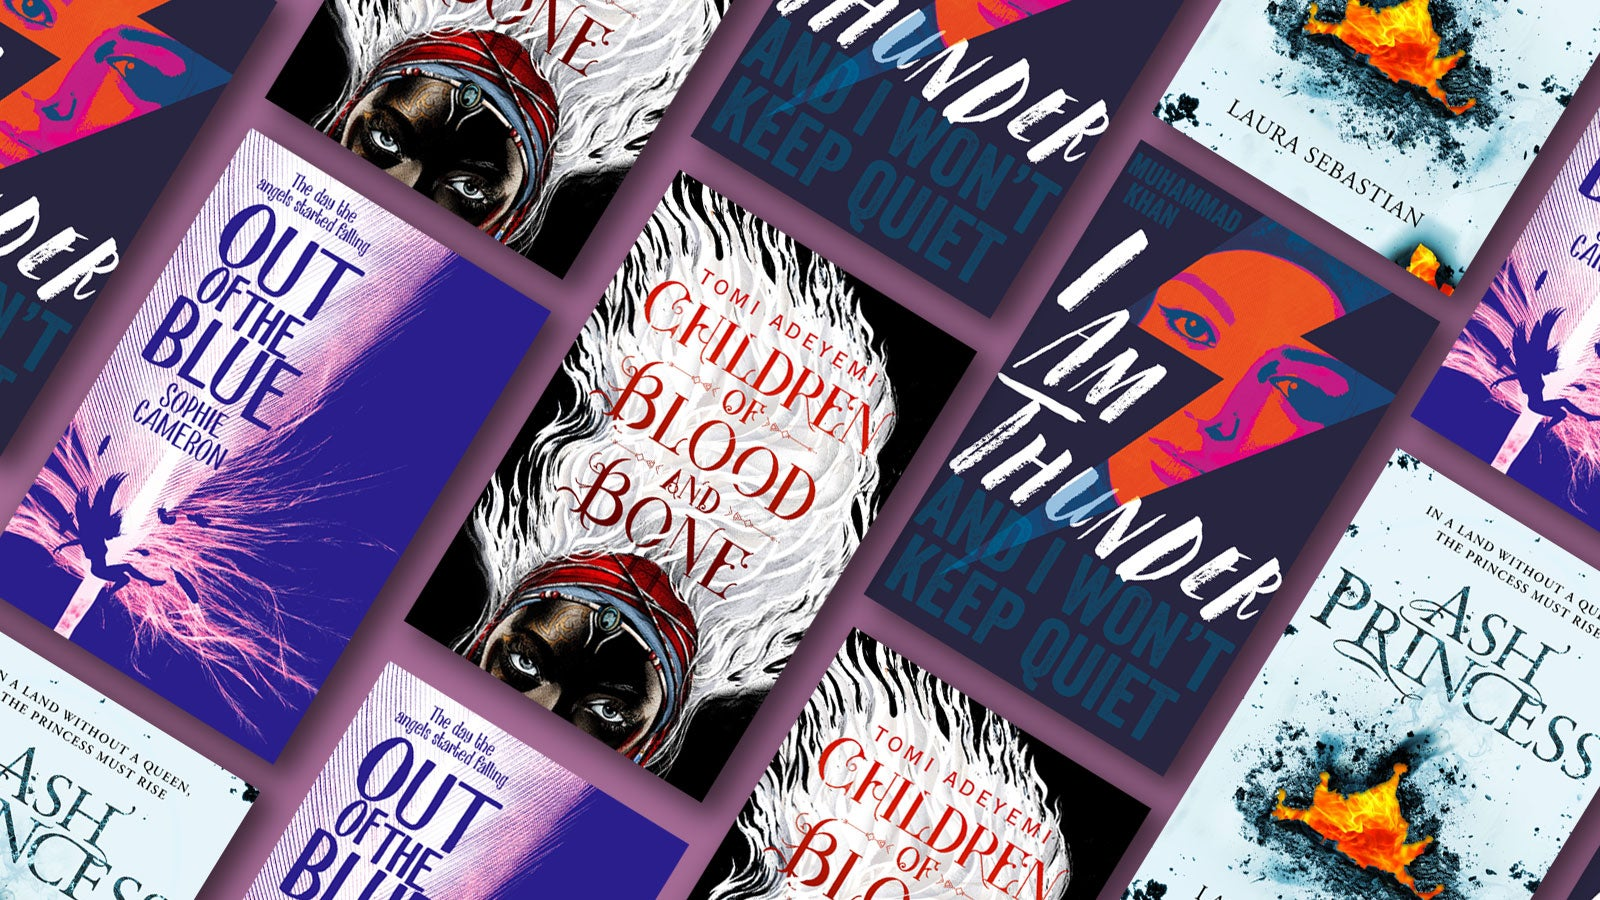 Tiled effect of book covers for Children of Blood and bone, I am Thunder and Out of the Blue